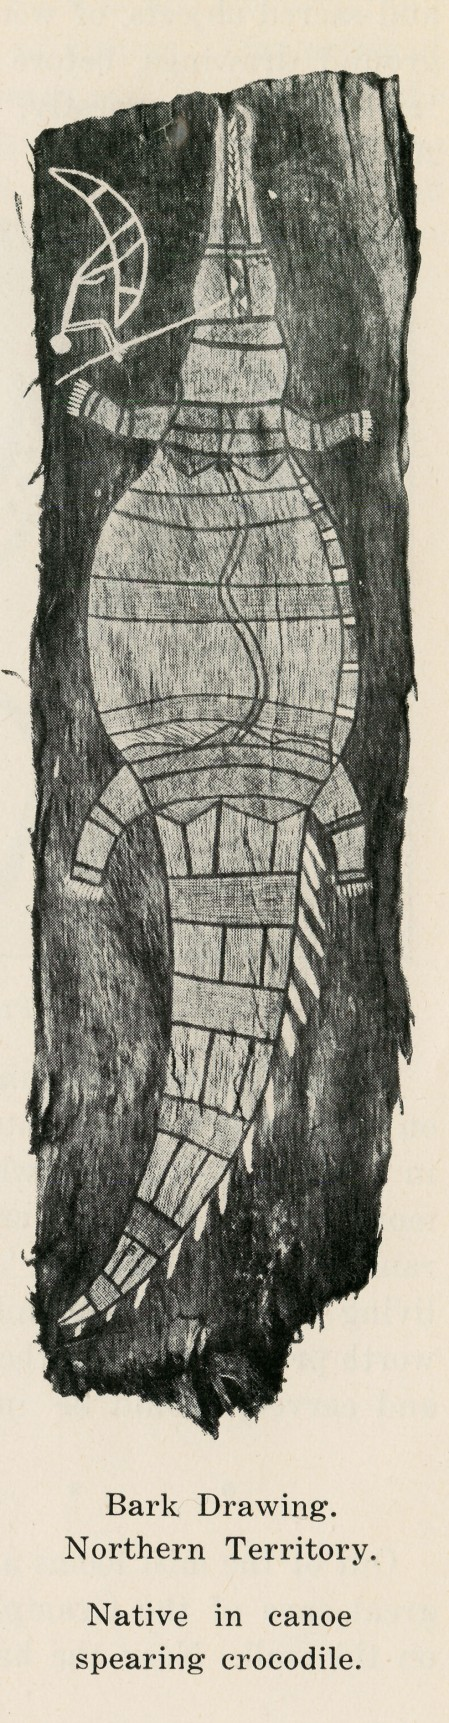 Bark Drawing. Northern Territory. Native in canoe spearing crocodile